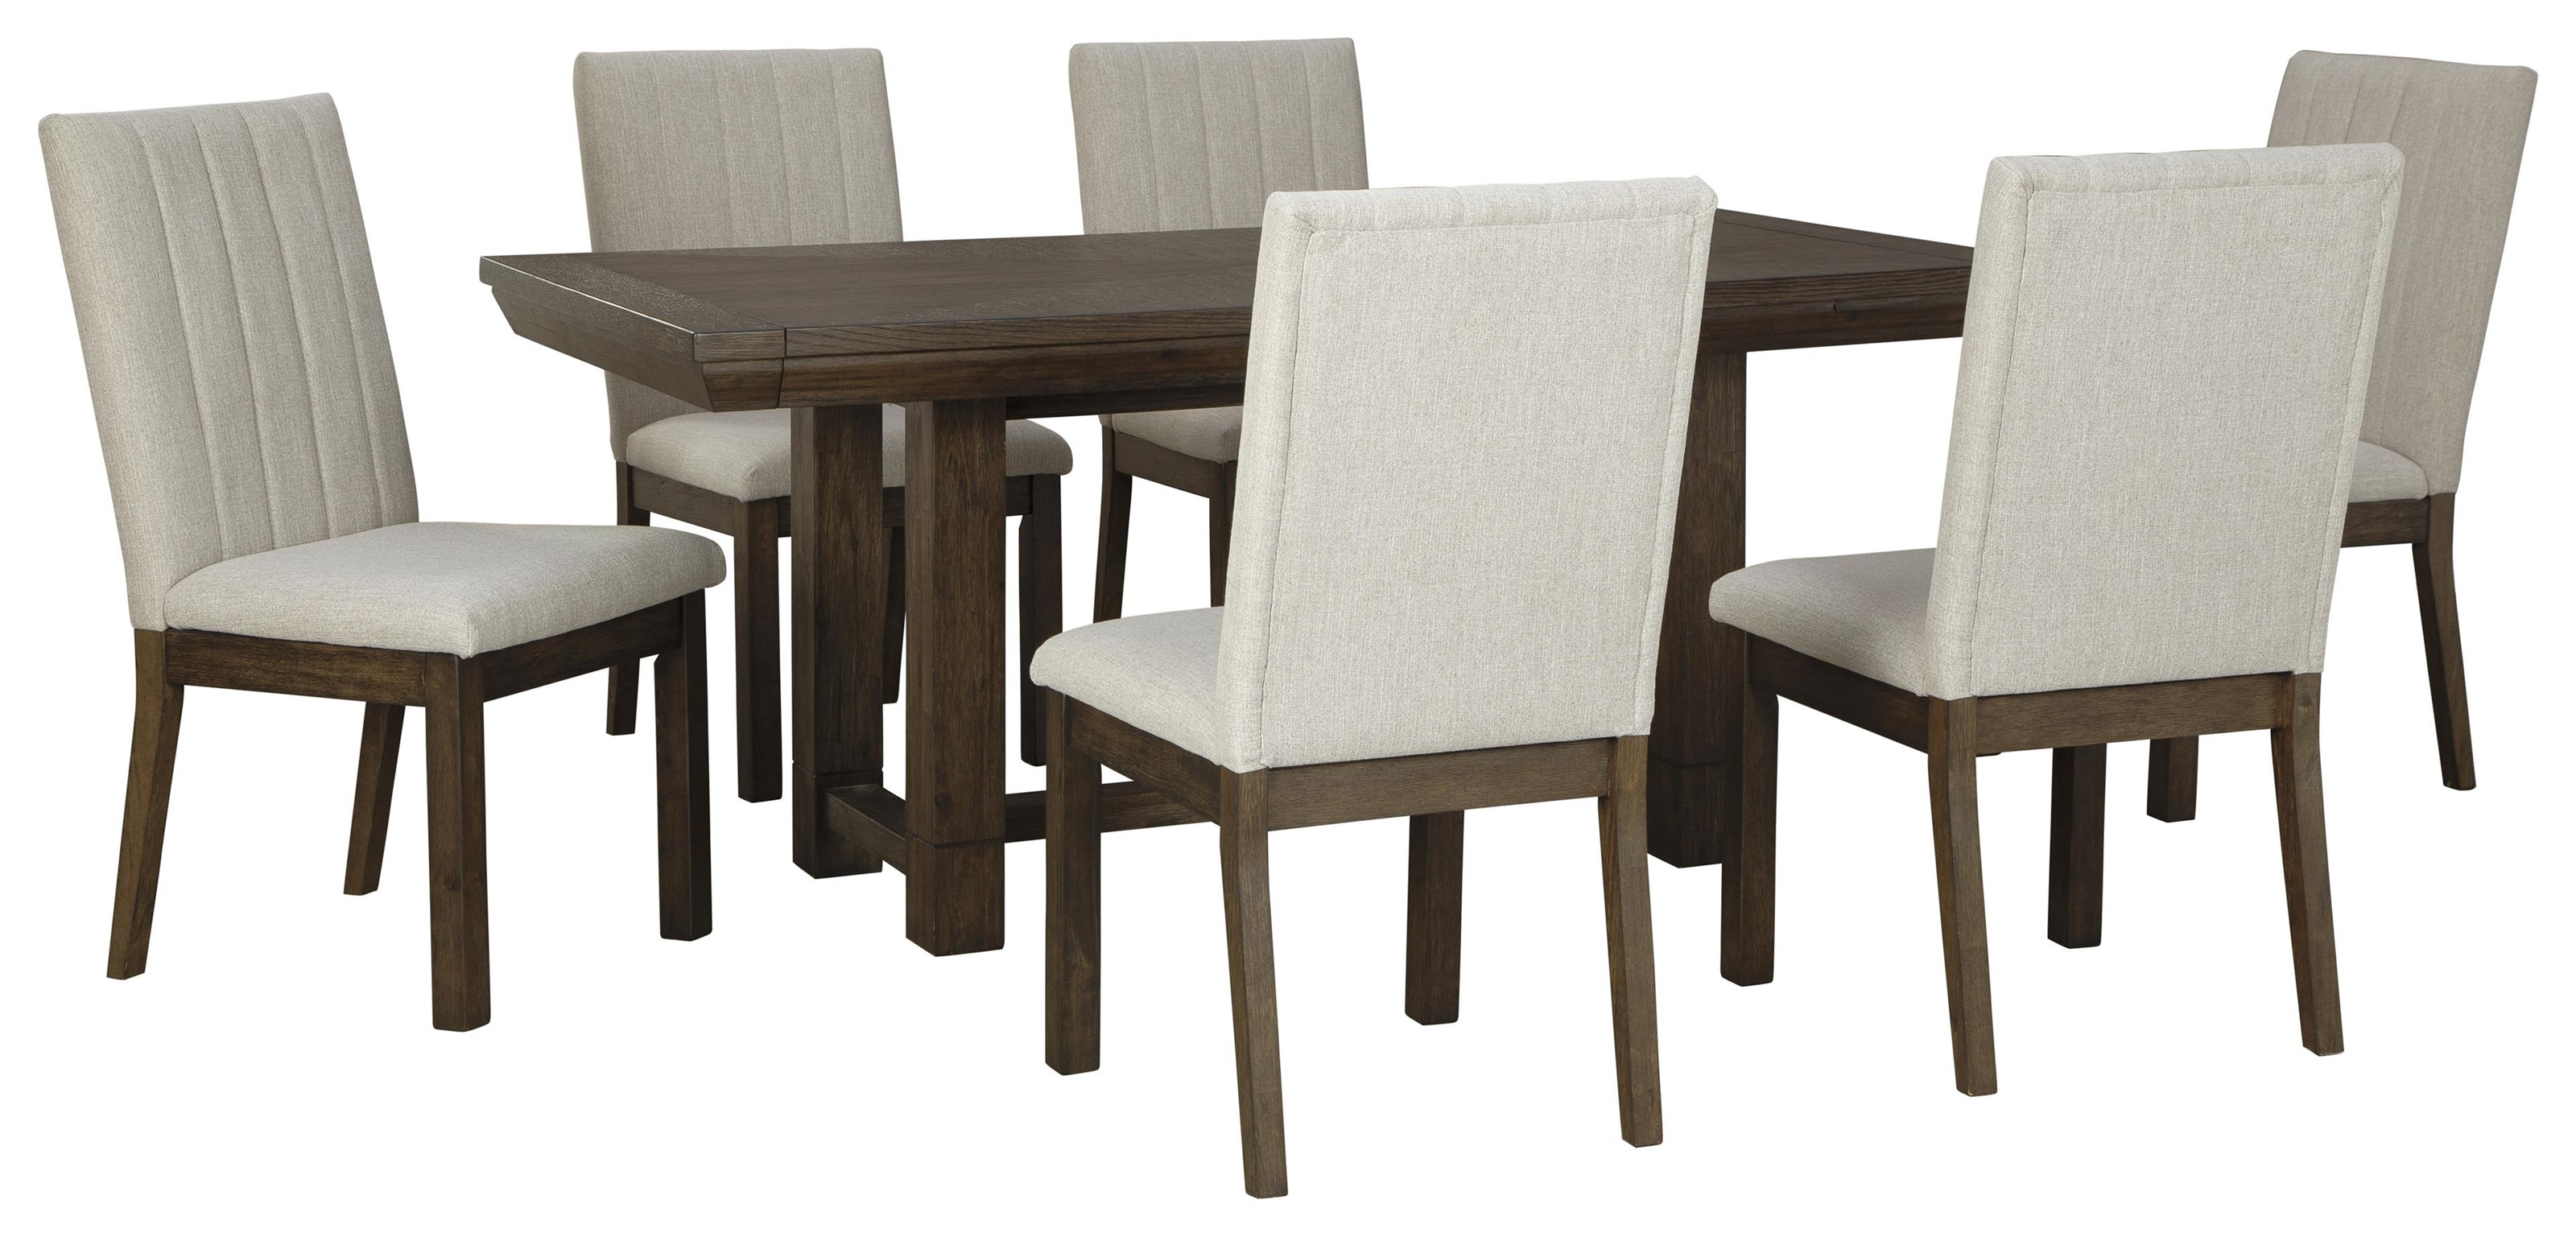 Ashley Furniture Dellbeck D748 45 6x01 7 Piece Dining Room Extension Table And 6 Upholstered Side Chairs Set Sam Levitz Furniture Dining 7 Or More Piece Sets